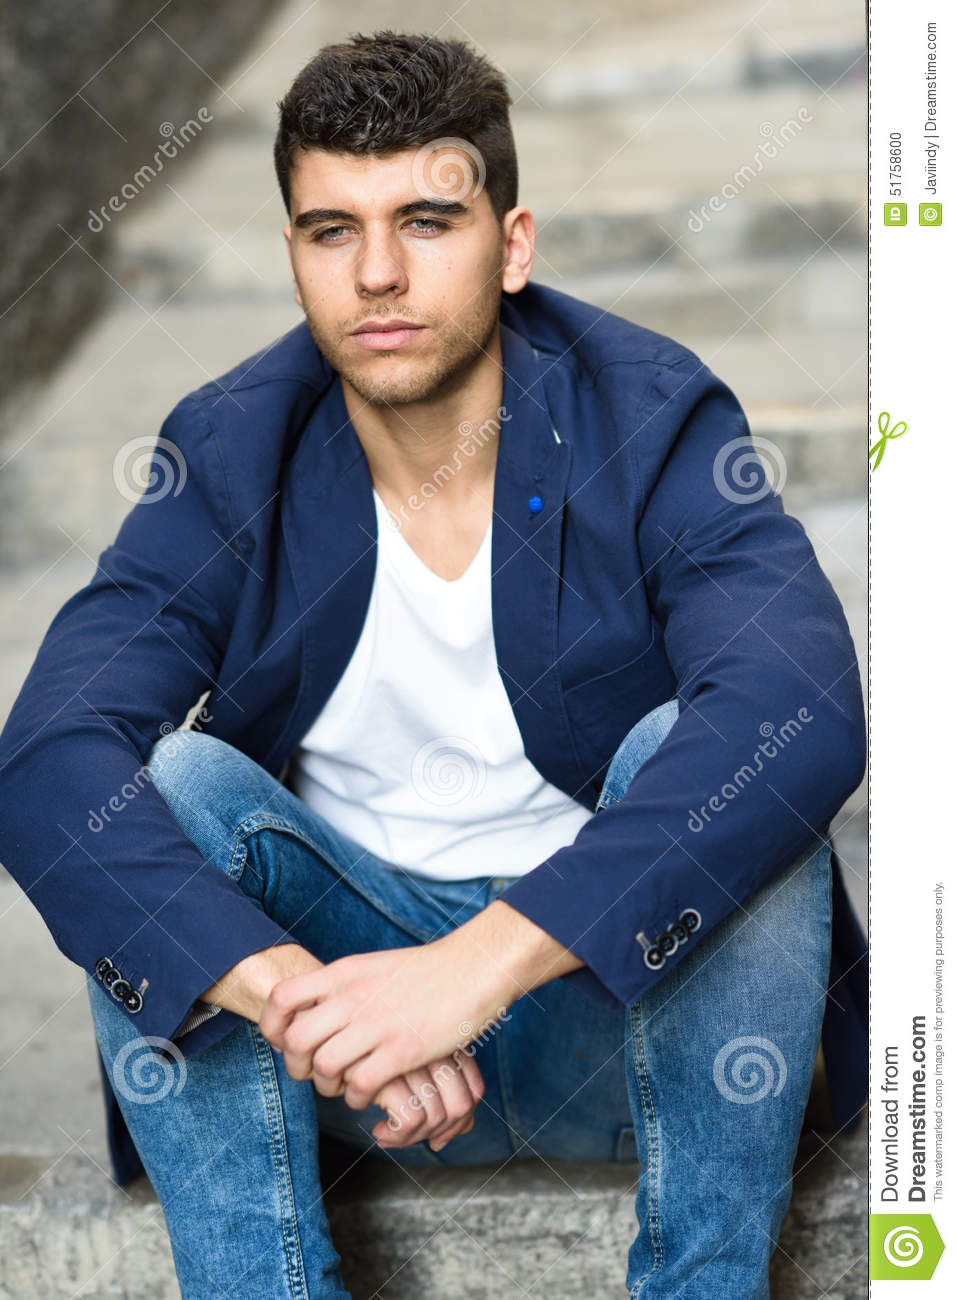 Handsome young man with blue eyes posing near a wall  Good Looking Young Man